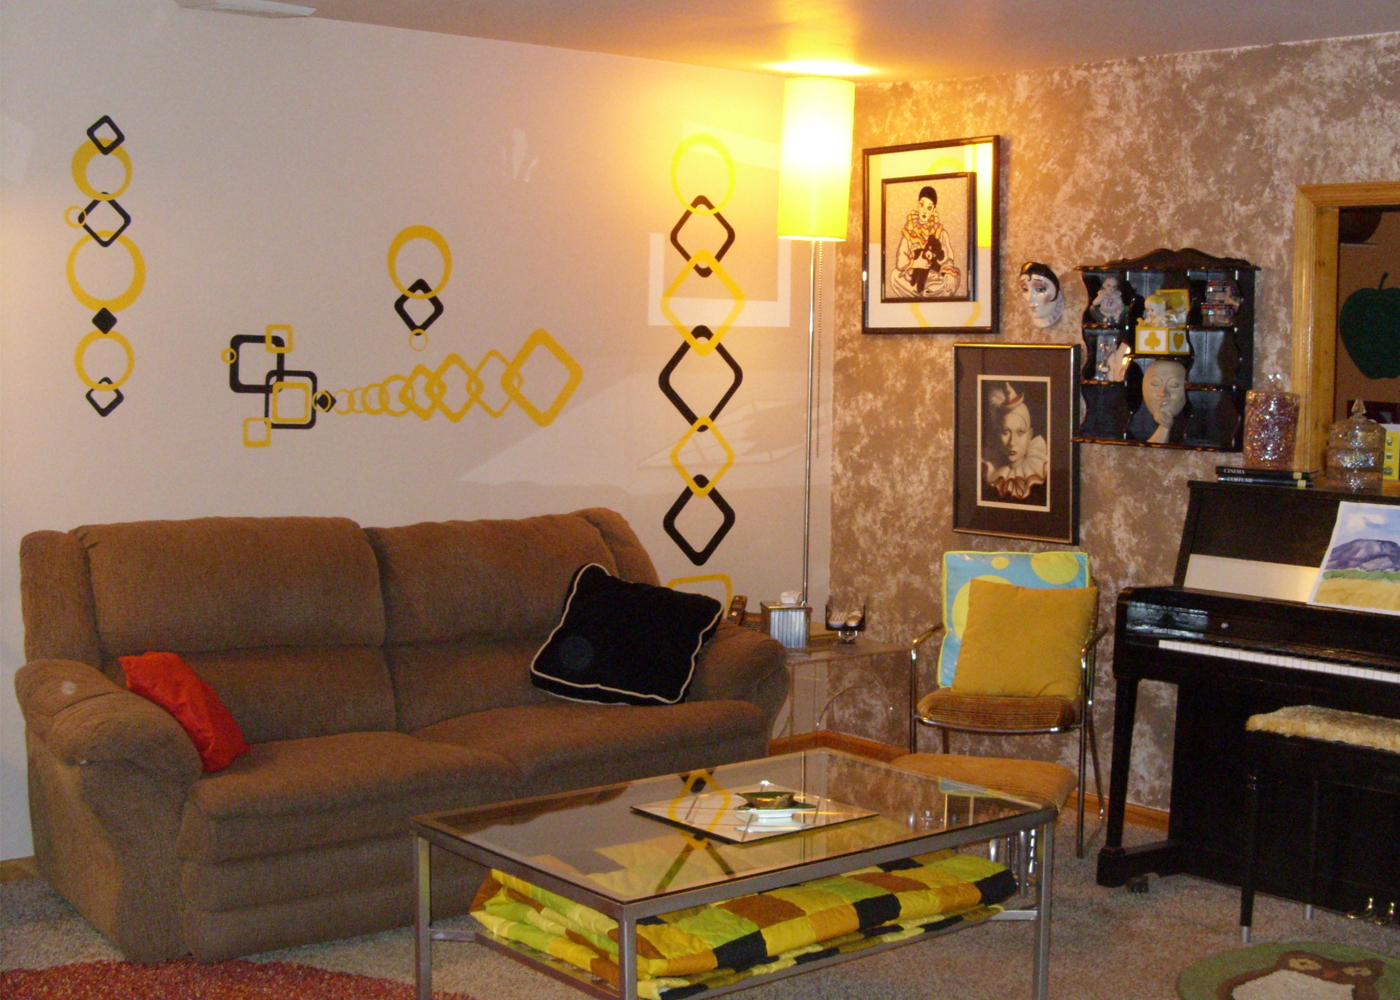 funky-square-wall-decals-vinyl-decal-circles-for-living-room-decor.jpg